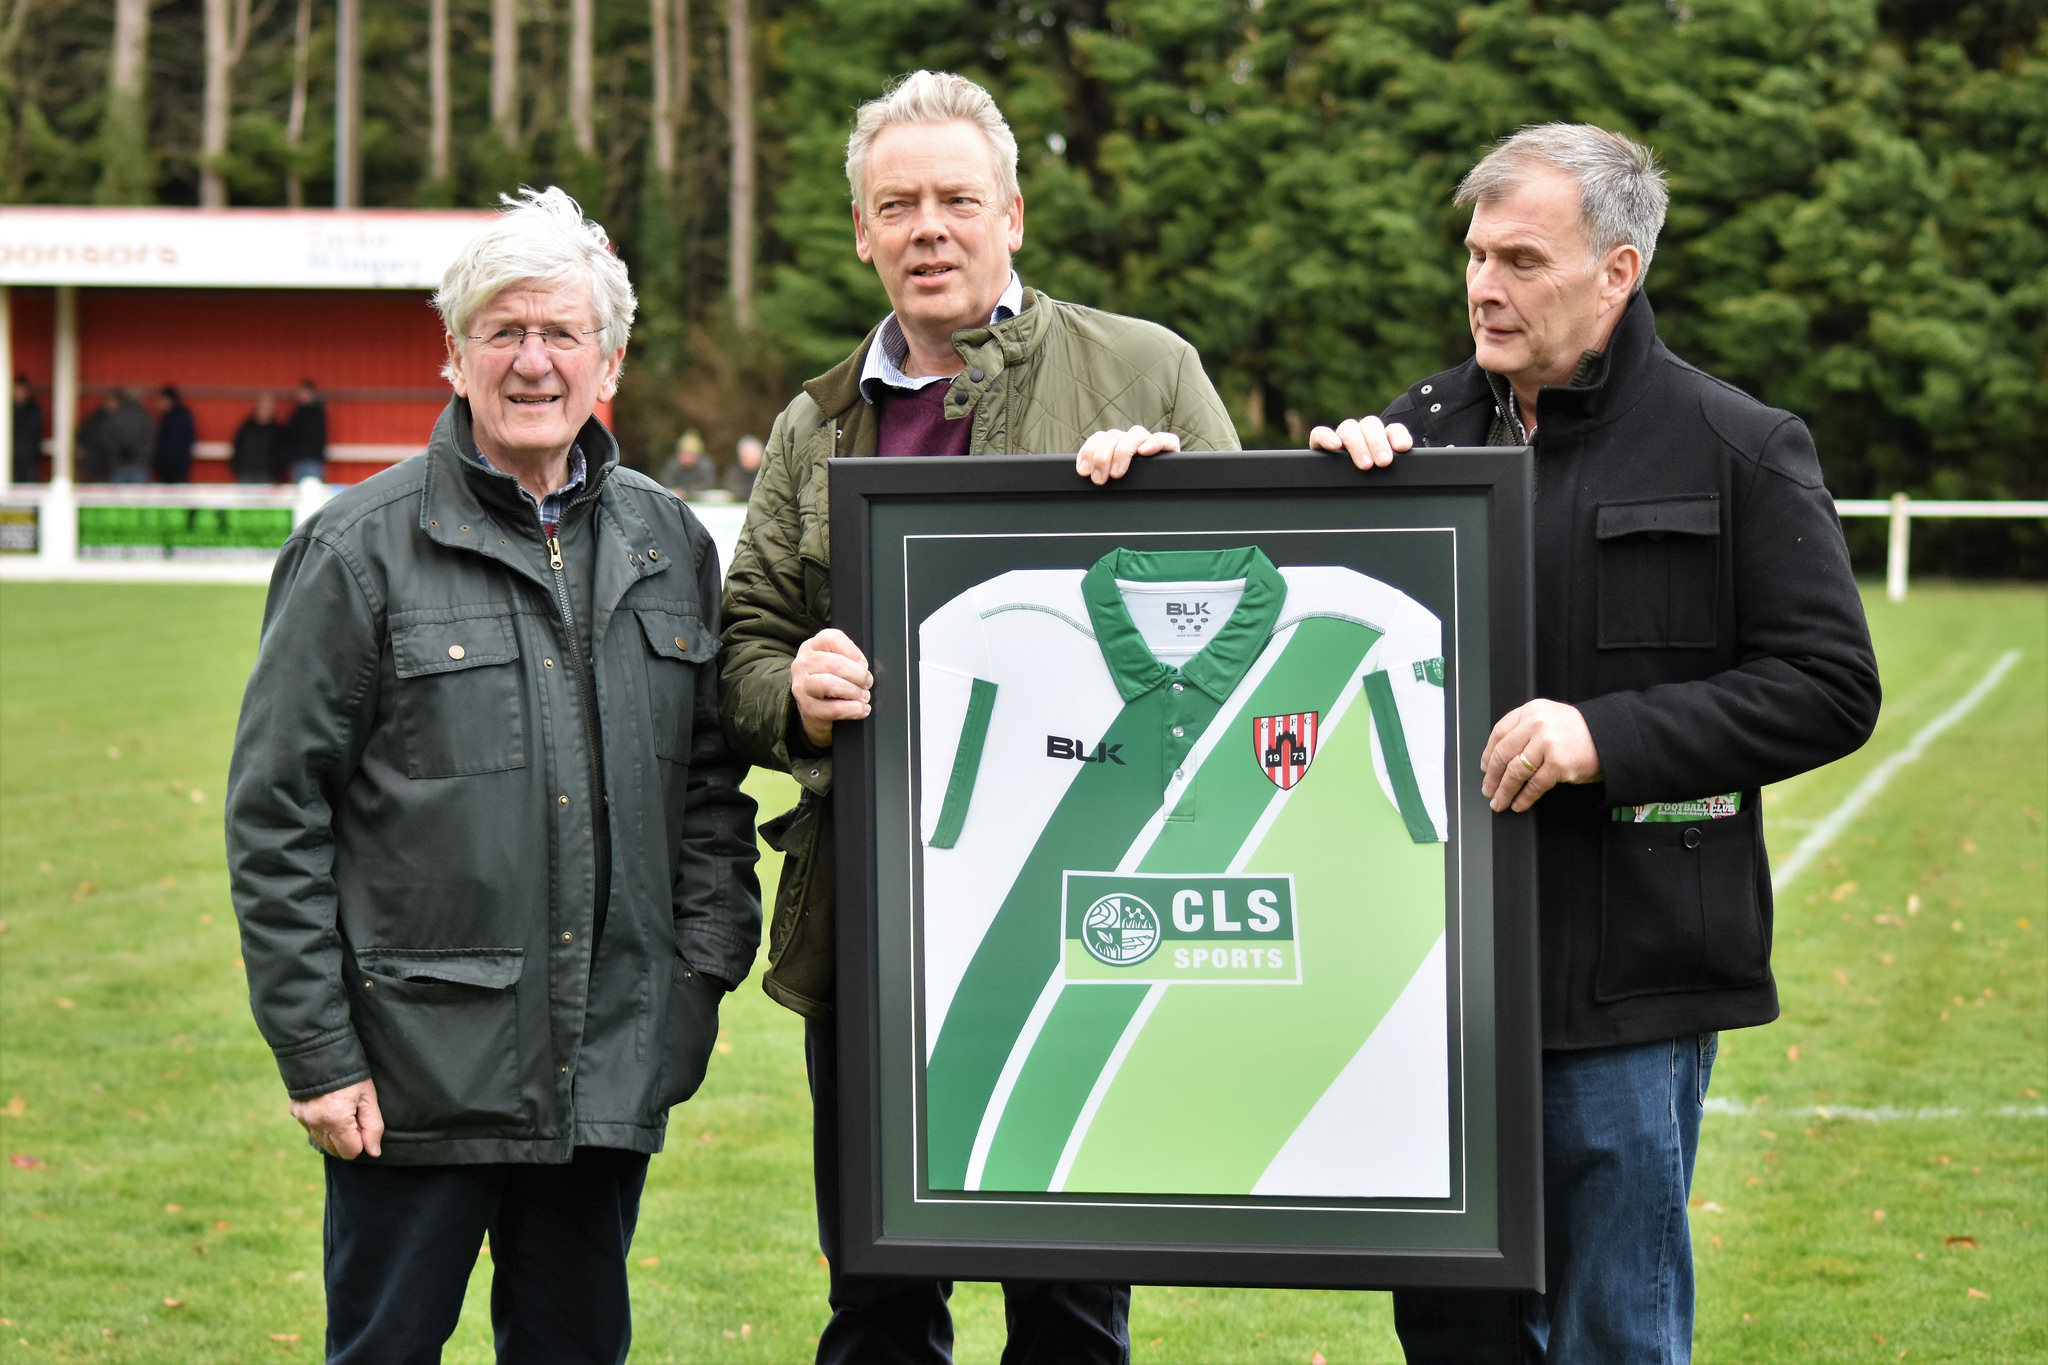 Guisborough Town Chairman Don Cowan (left) with members of Cleveland Land Services, one of the club's main sponsors.  Mr Cowan presented a framed copy of the club's smart new green and white away strip